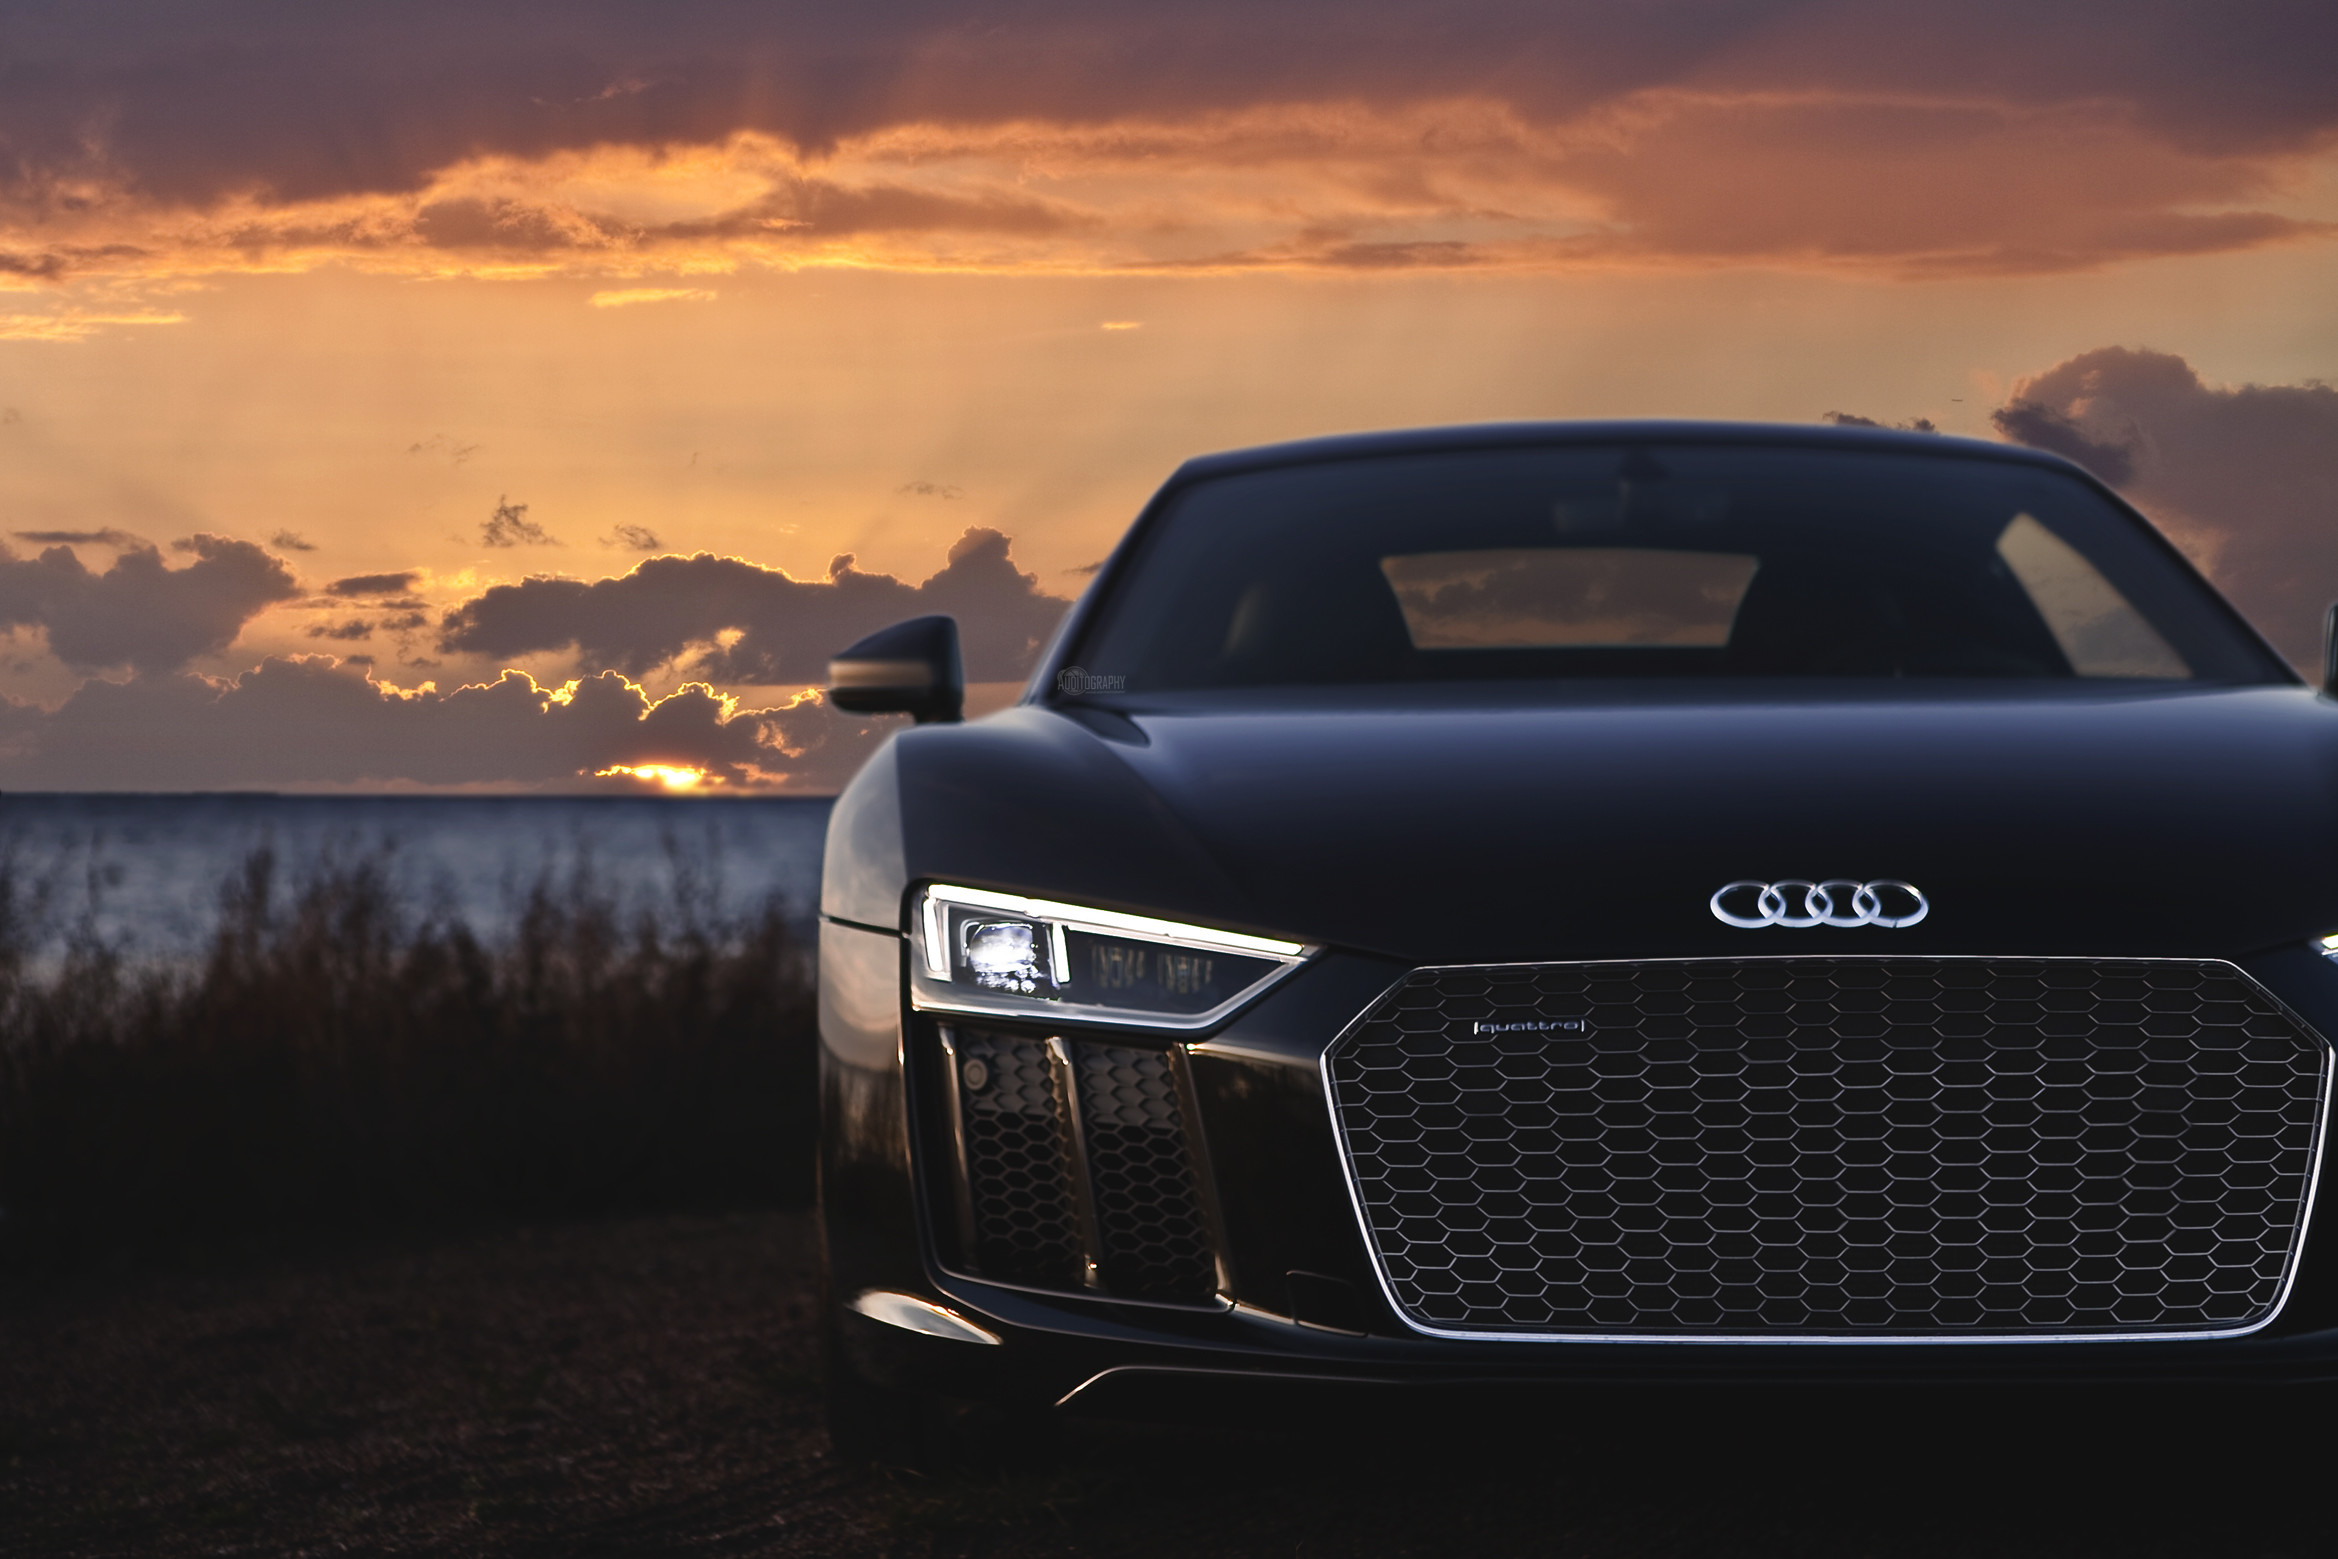 audi r8 background (76+ images)